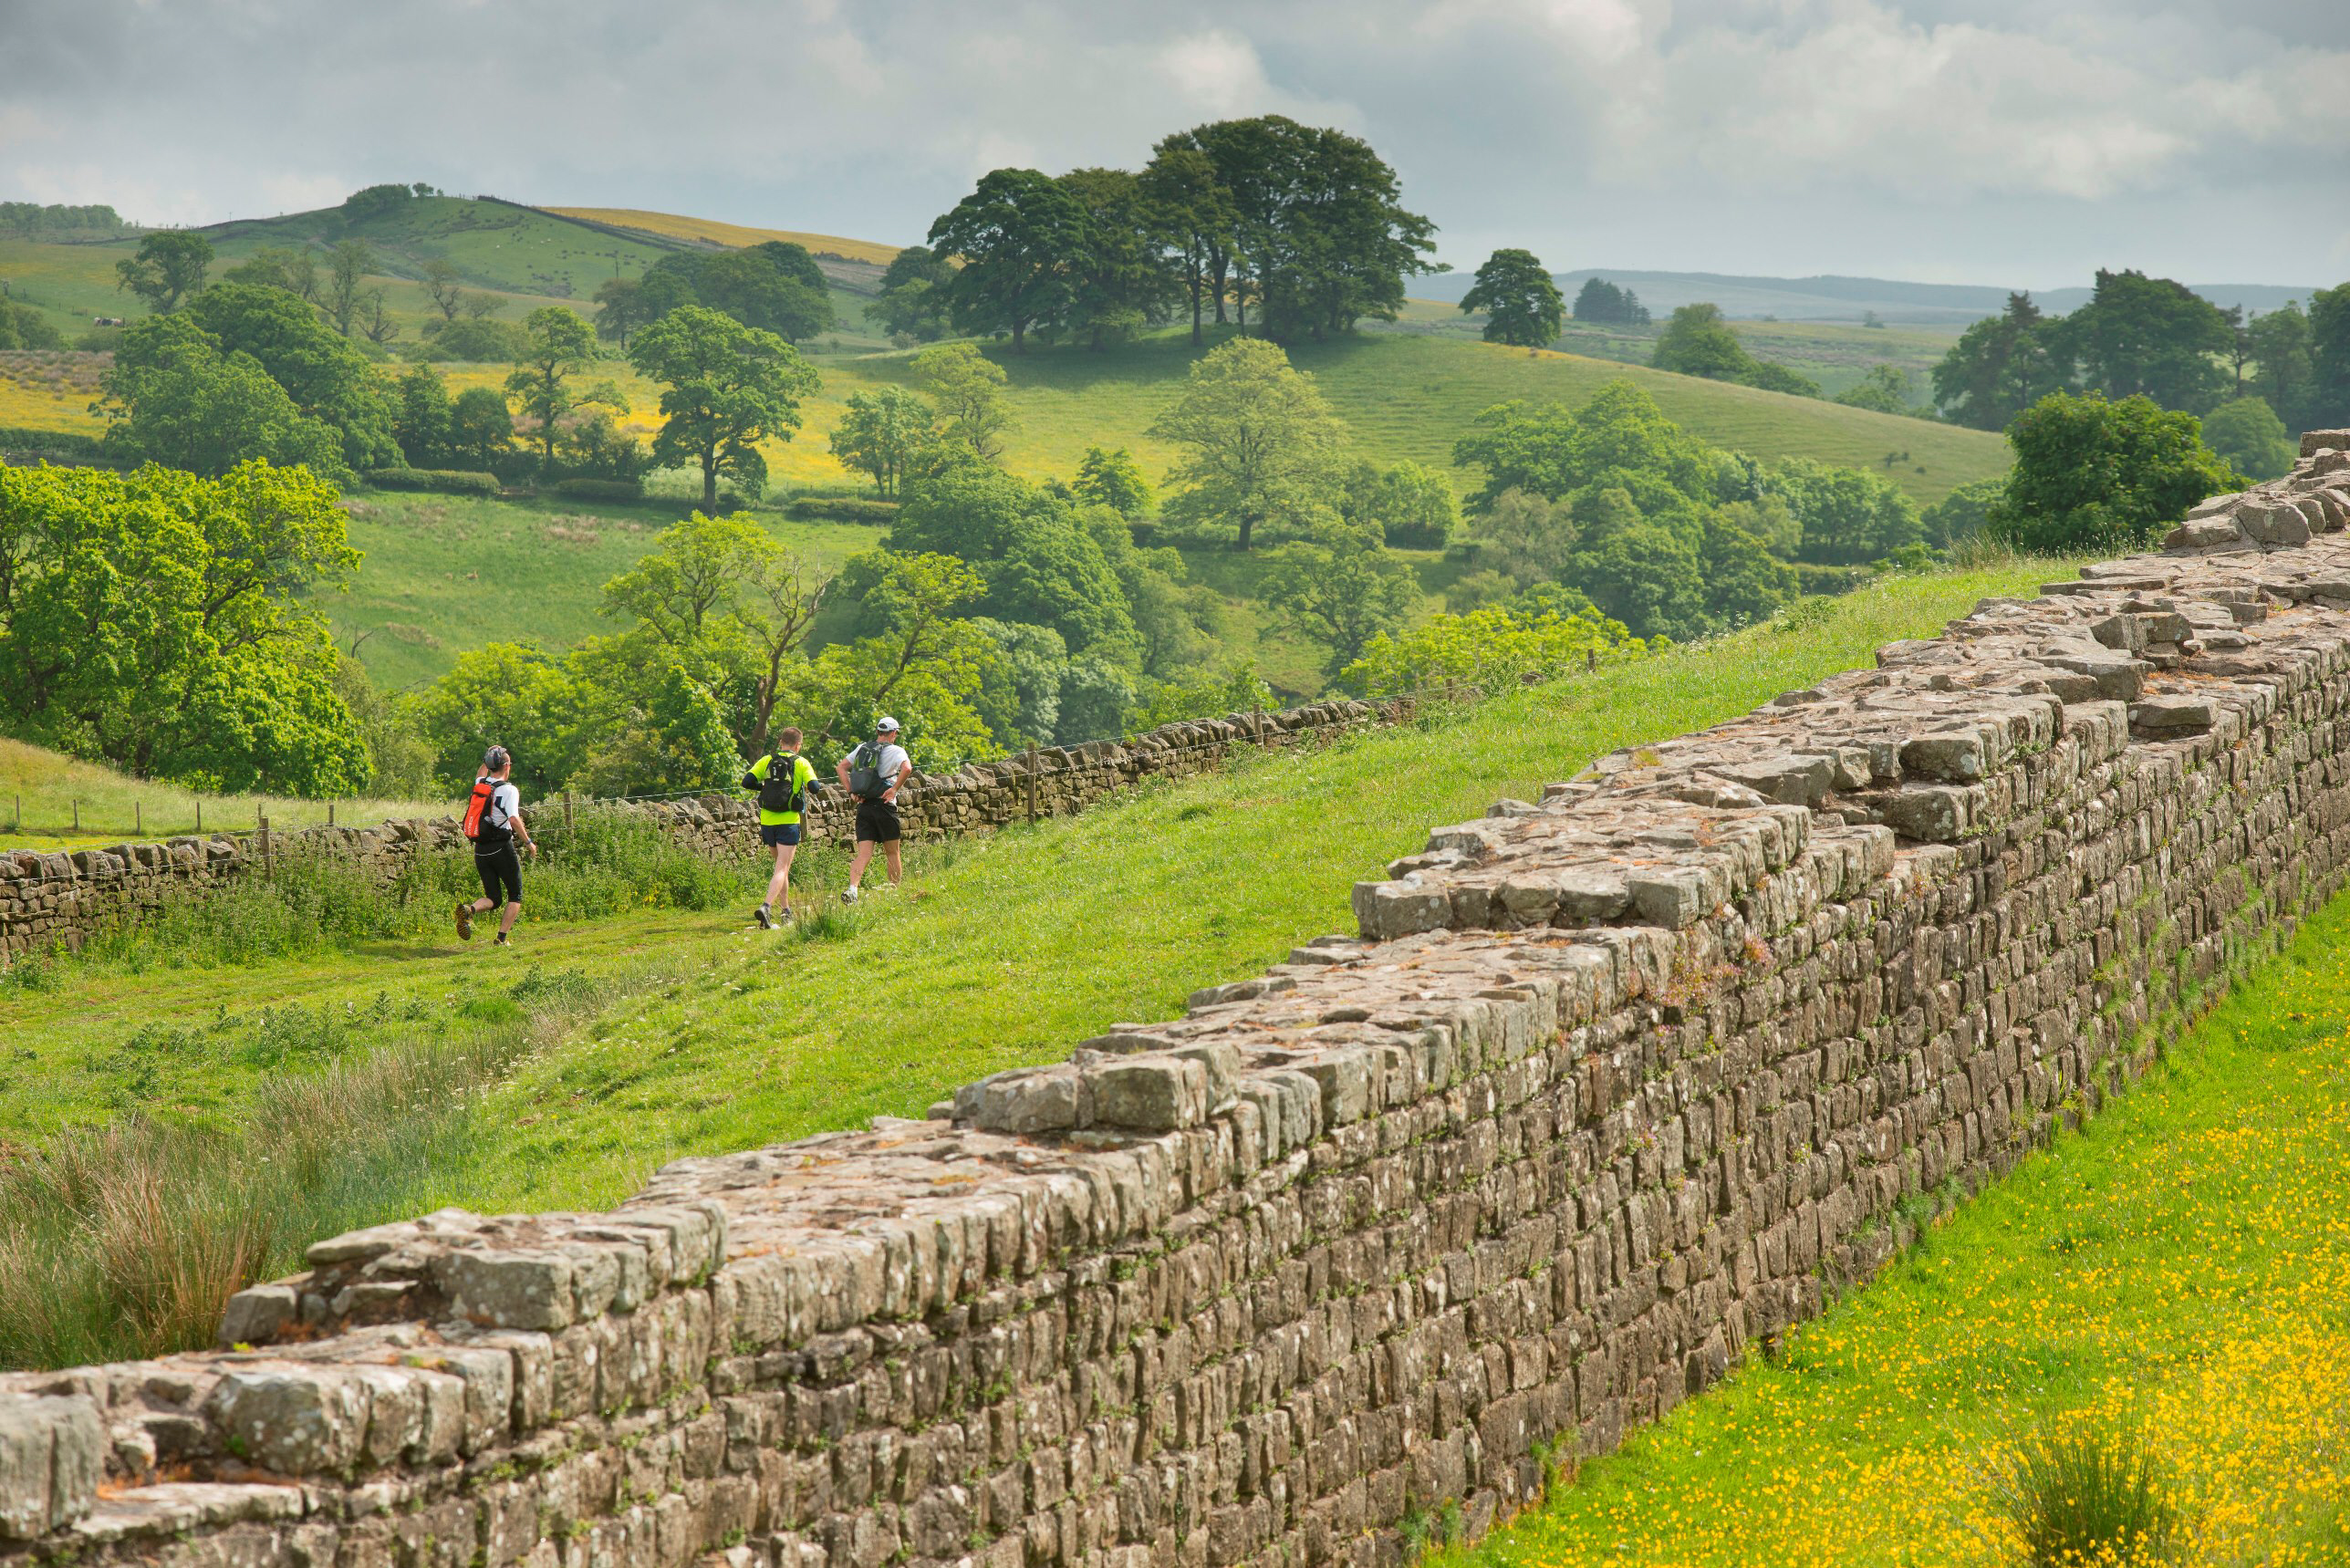 Nearly 1000 signed up for The Wall Ultramarathon 2014